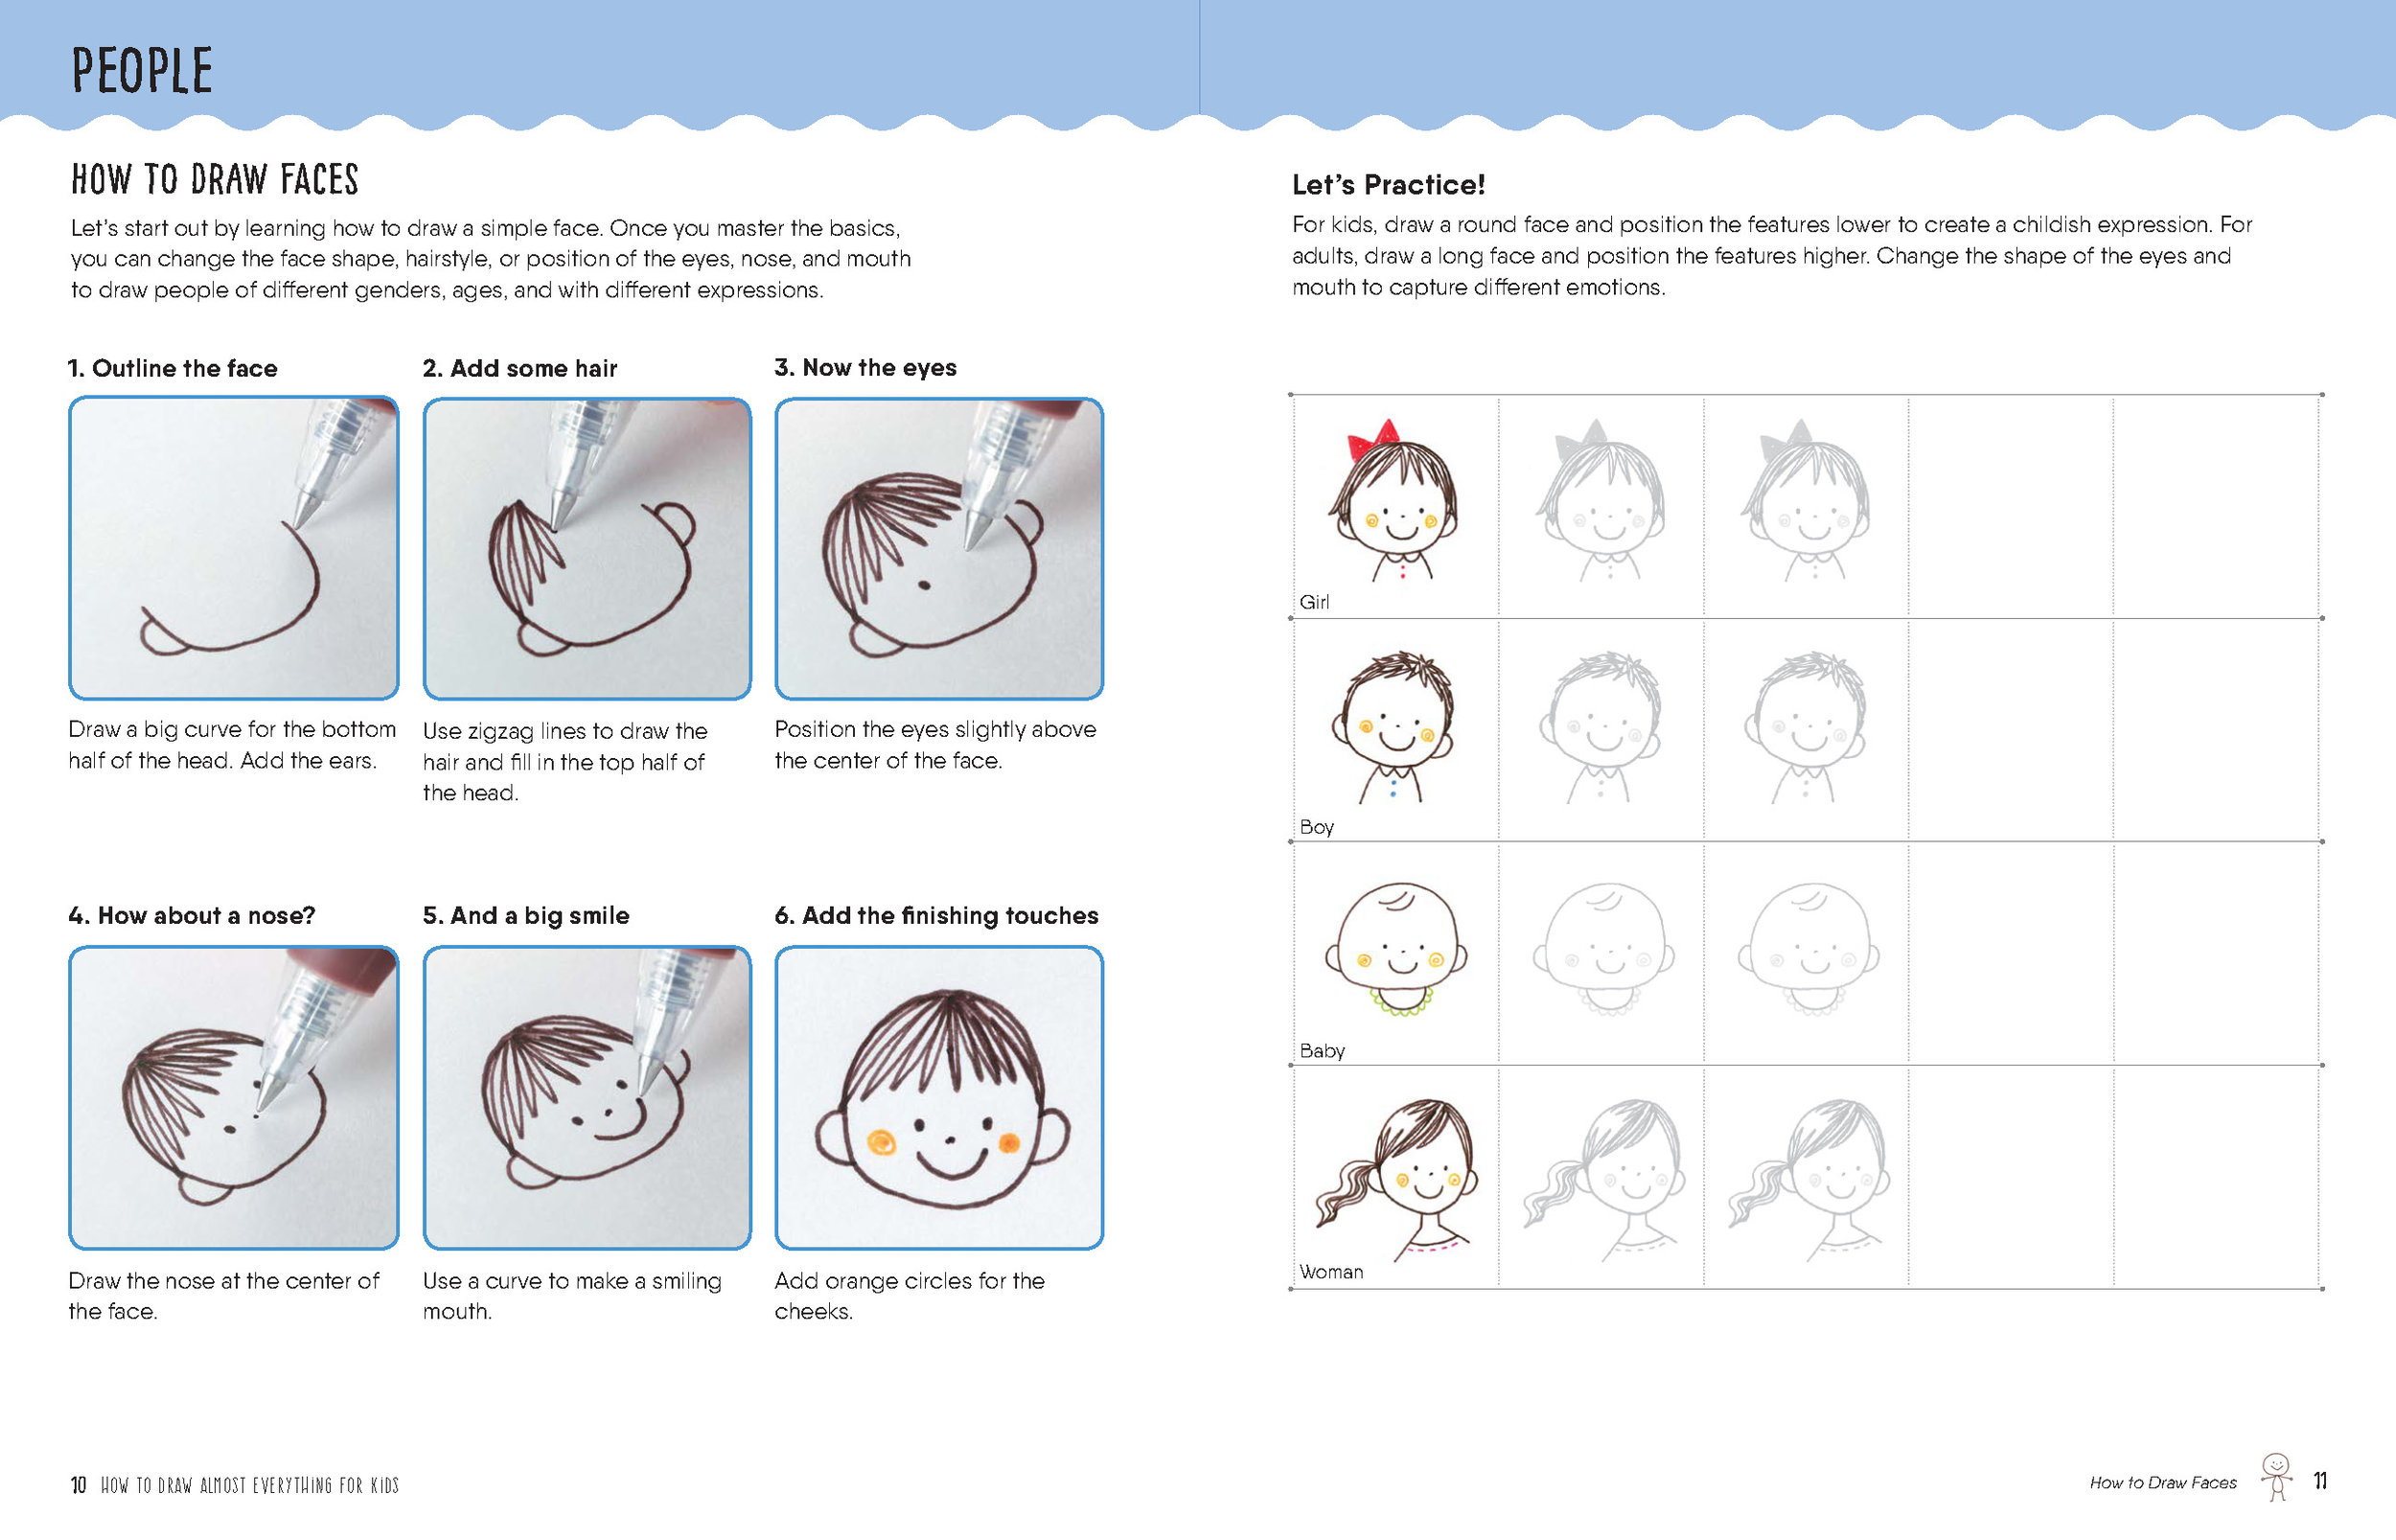 How to Draw Almost Everything for Kids 10.11.jpg